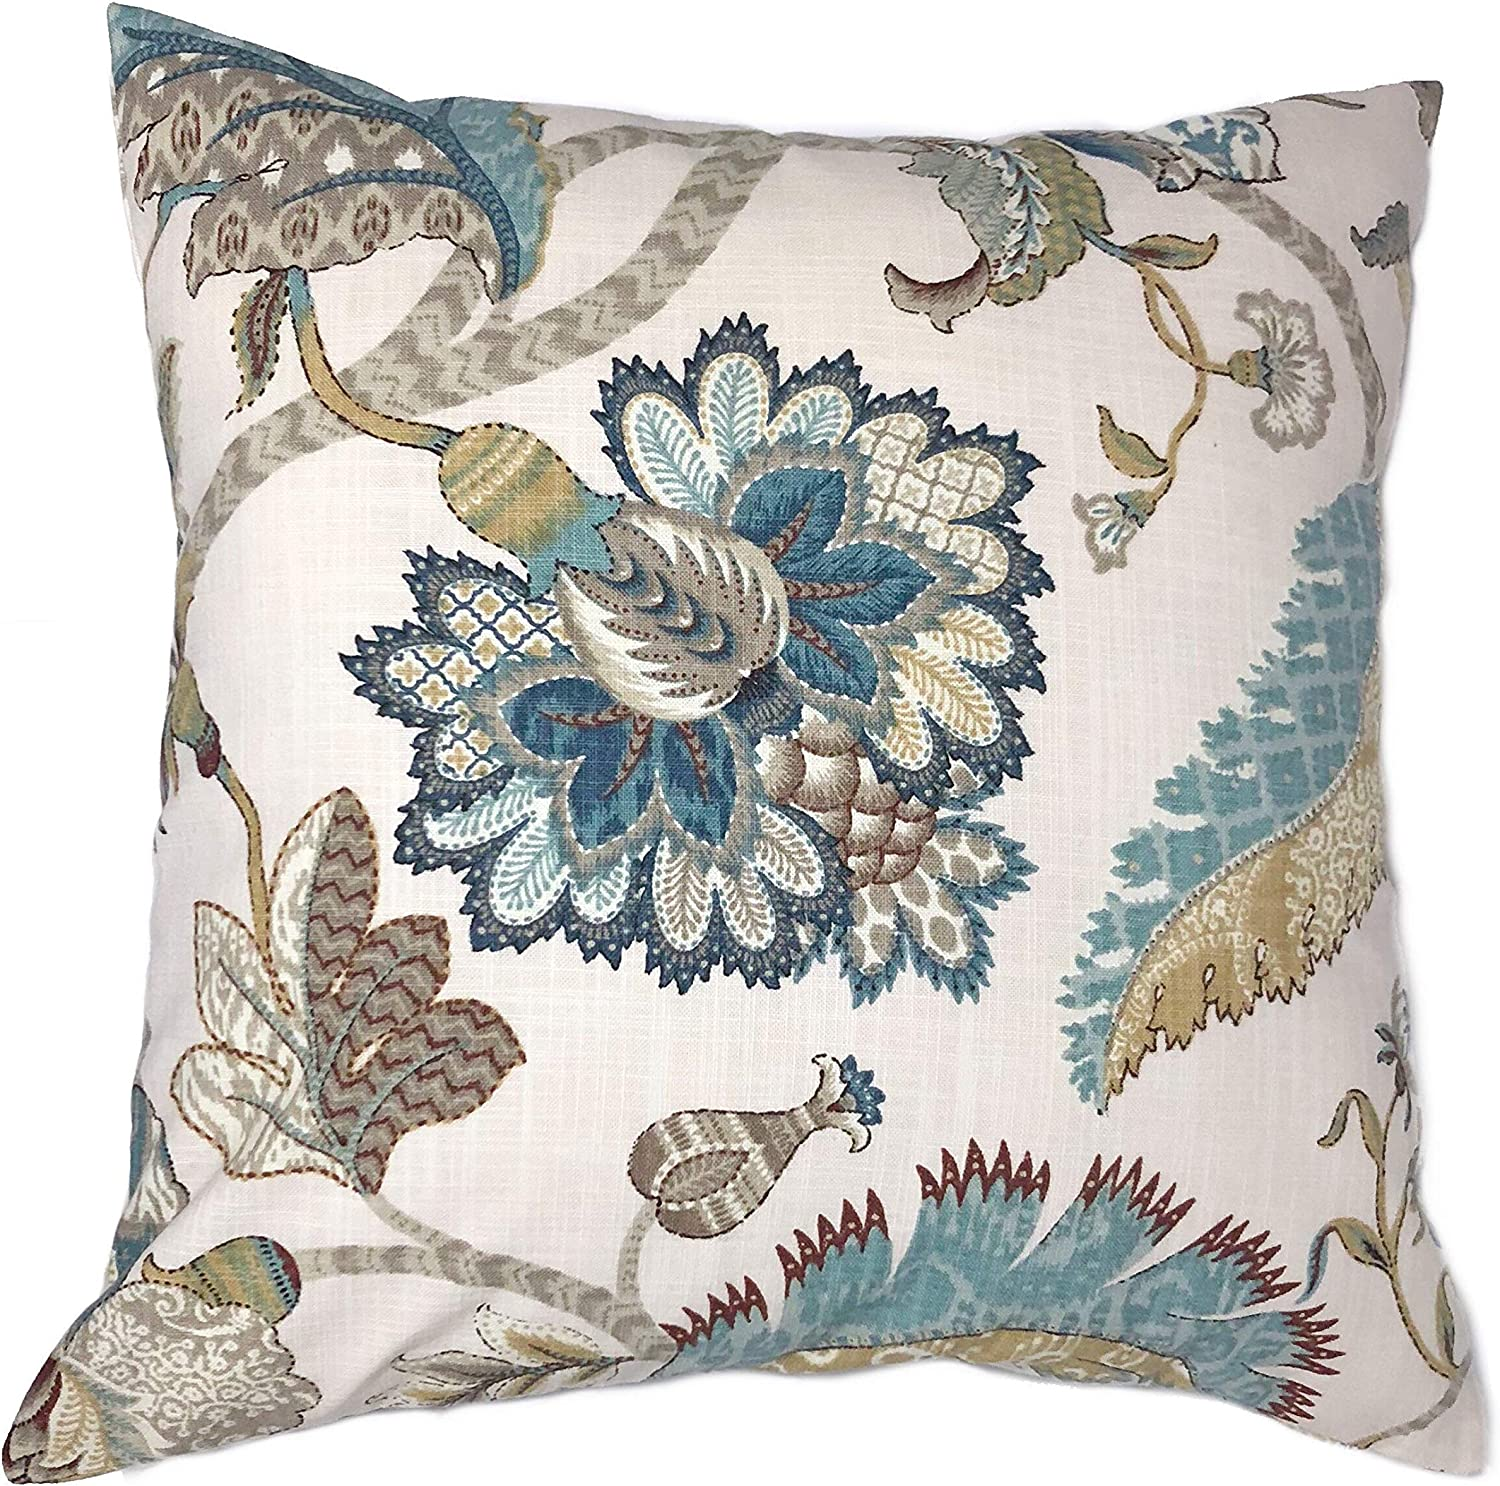 Flowershave357 French Blue Floral Pillow Cover Teal Brown Taupe Golden Tan Ivory Euro Sham Lumbar Home Decor Accent Pillow Case